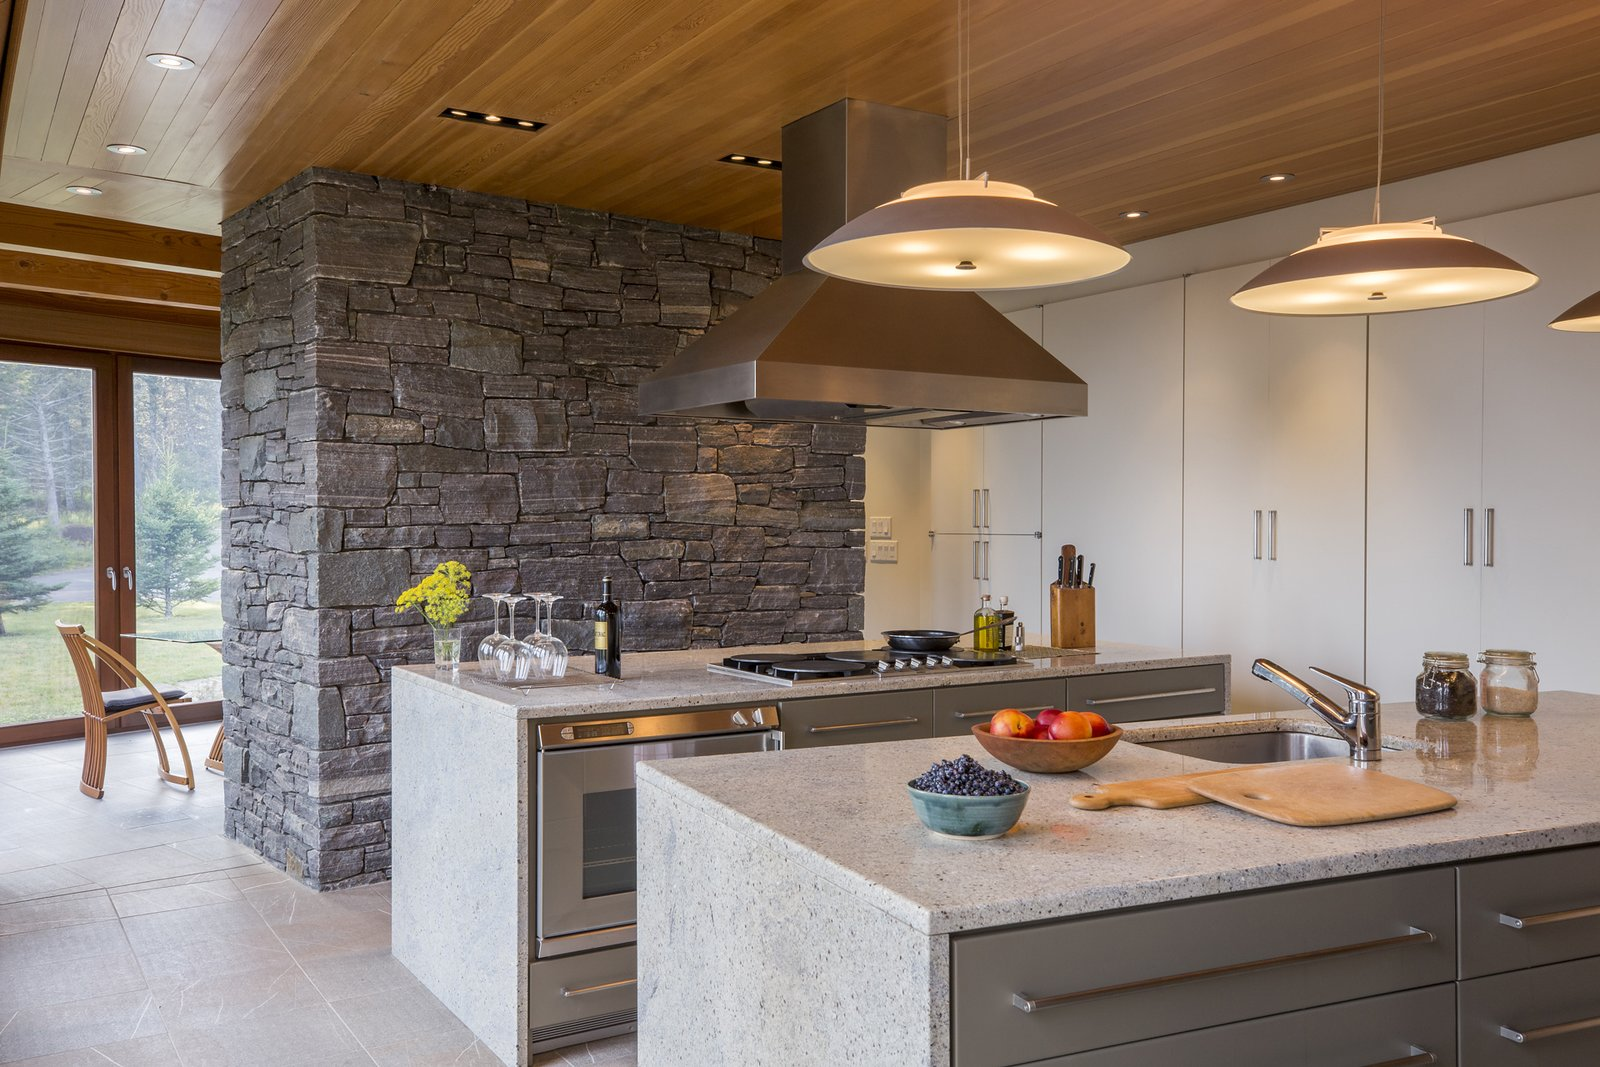 Kitchen, Granite, Colorful, Limestone, Recessed, Ceiling, Refrigerator, Wall Oven, Pendant, Cooktops, Range Hood, Dishwasher, and Undermount Kitchen, looking towards the dining room  Best Kitchen Pendant Dishwasher Range Hood Limestone Recessed Refrigerator Photos from Deep Cove House